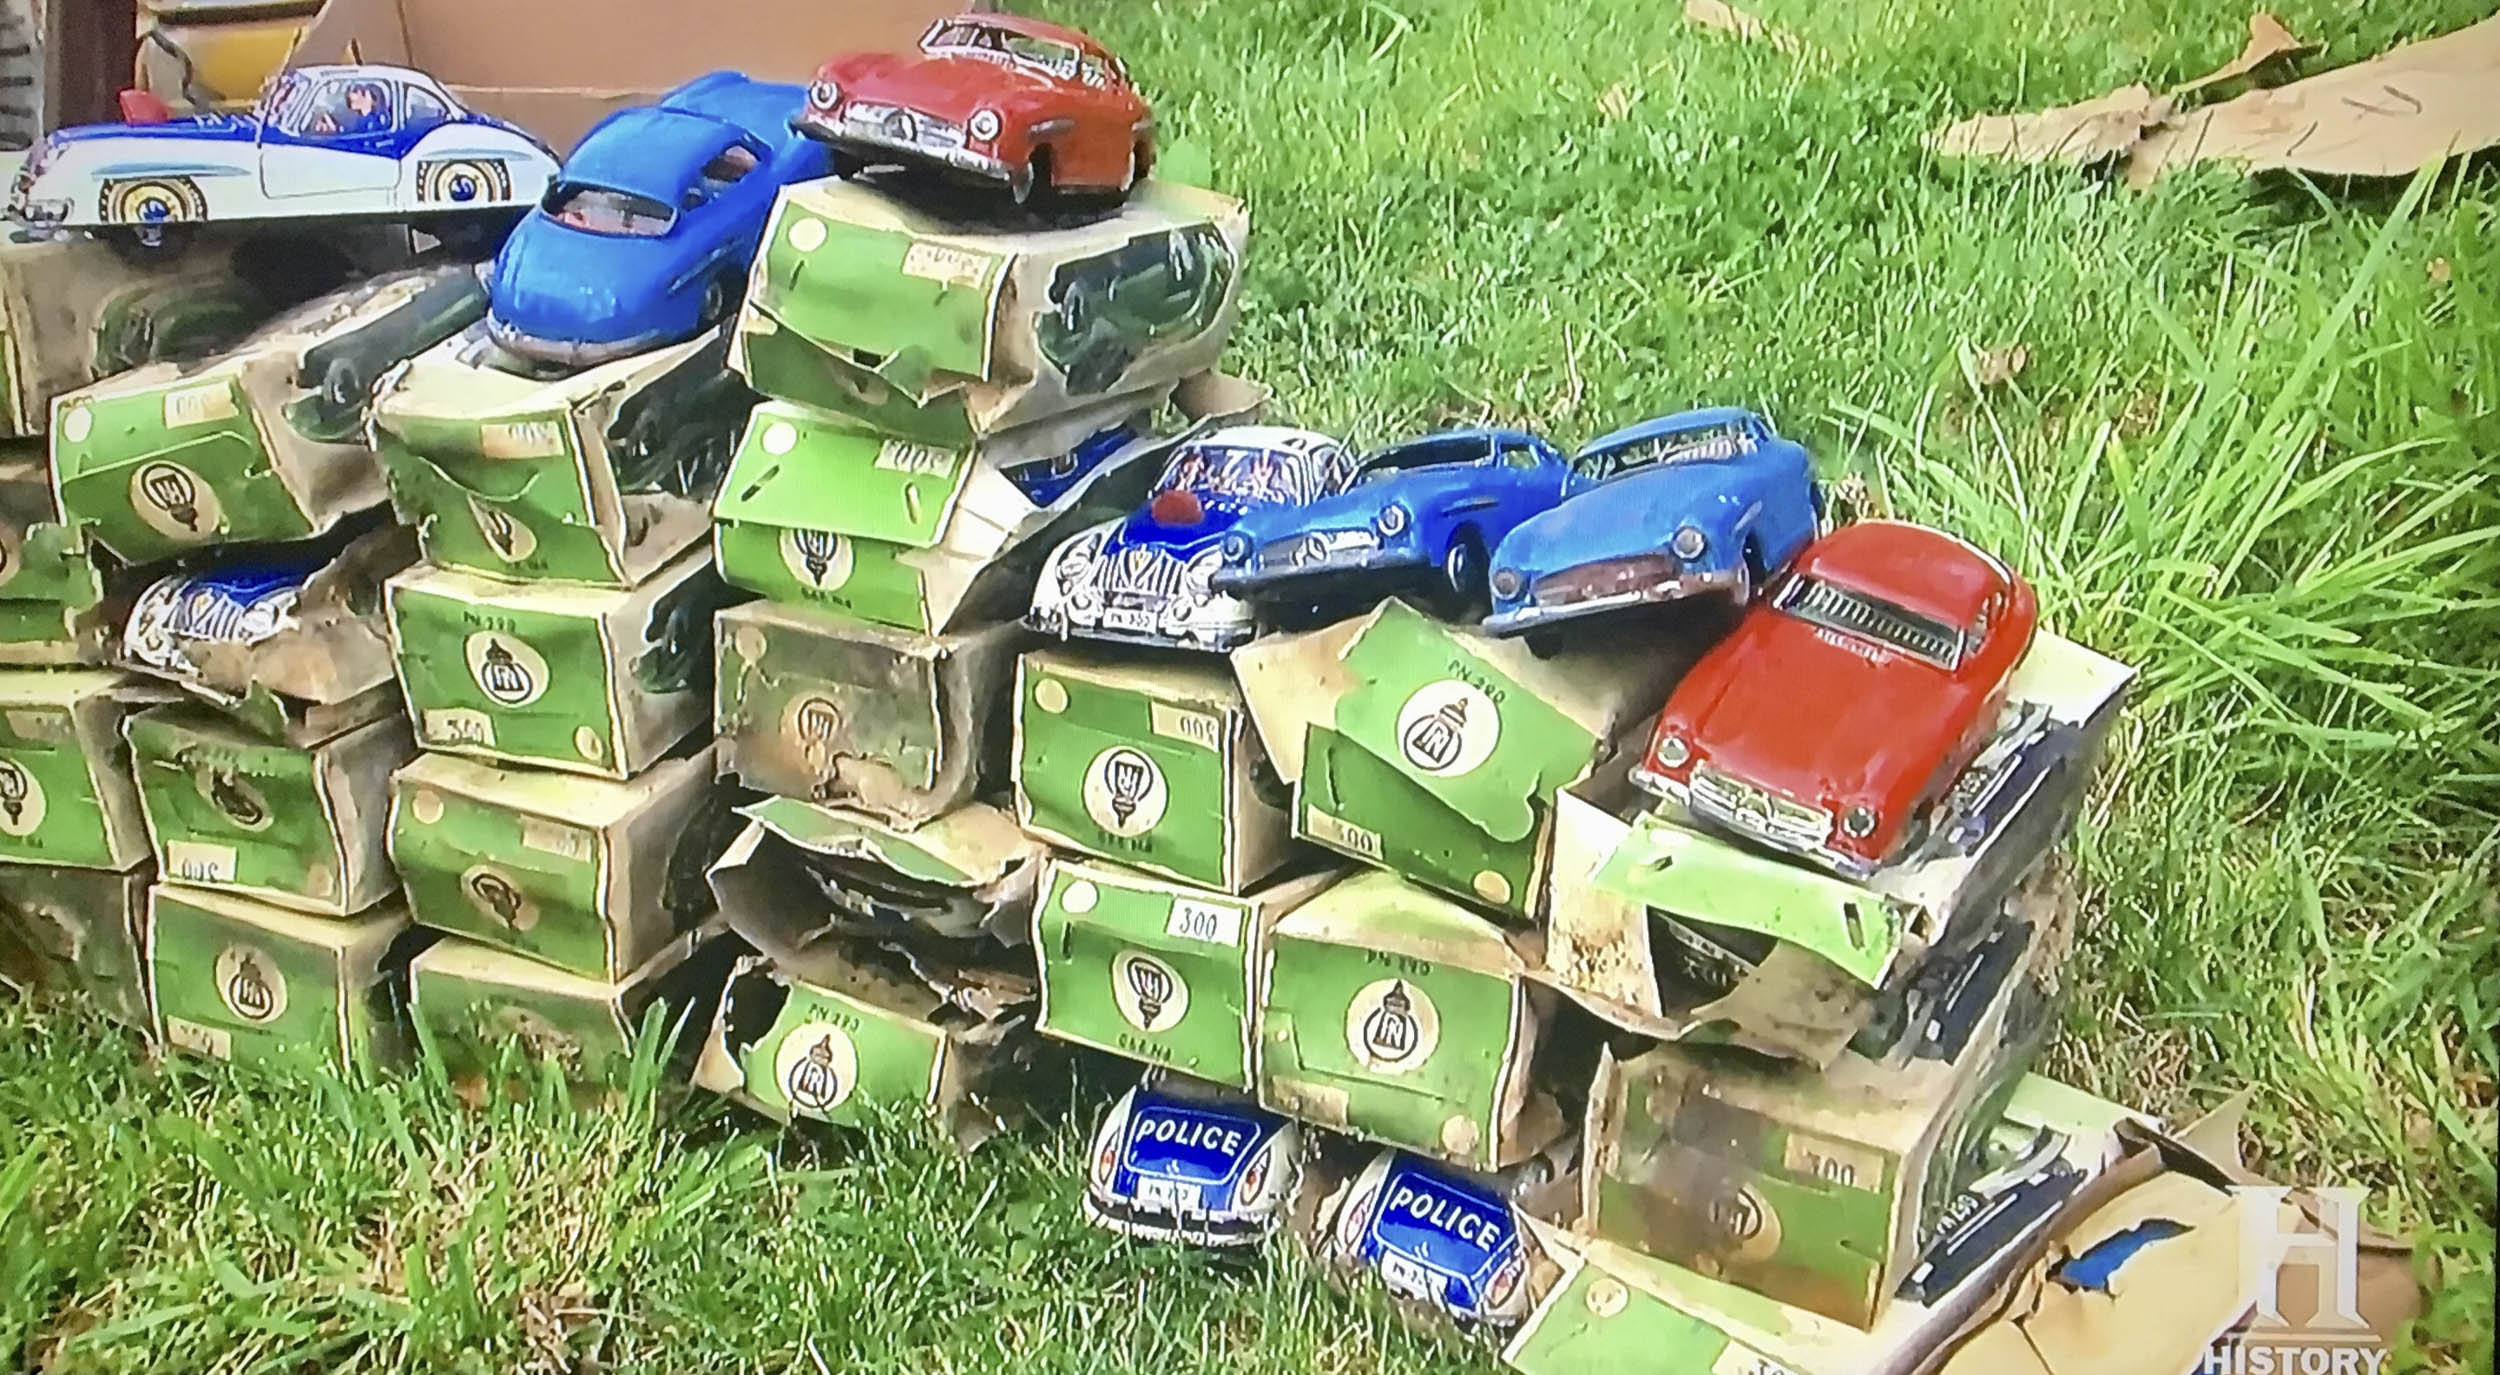 Mike Wolfe bought 42 tin toy cars, most in their original (but dilapidated) boxes, for $25 apiece.